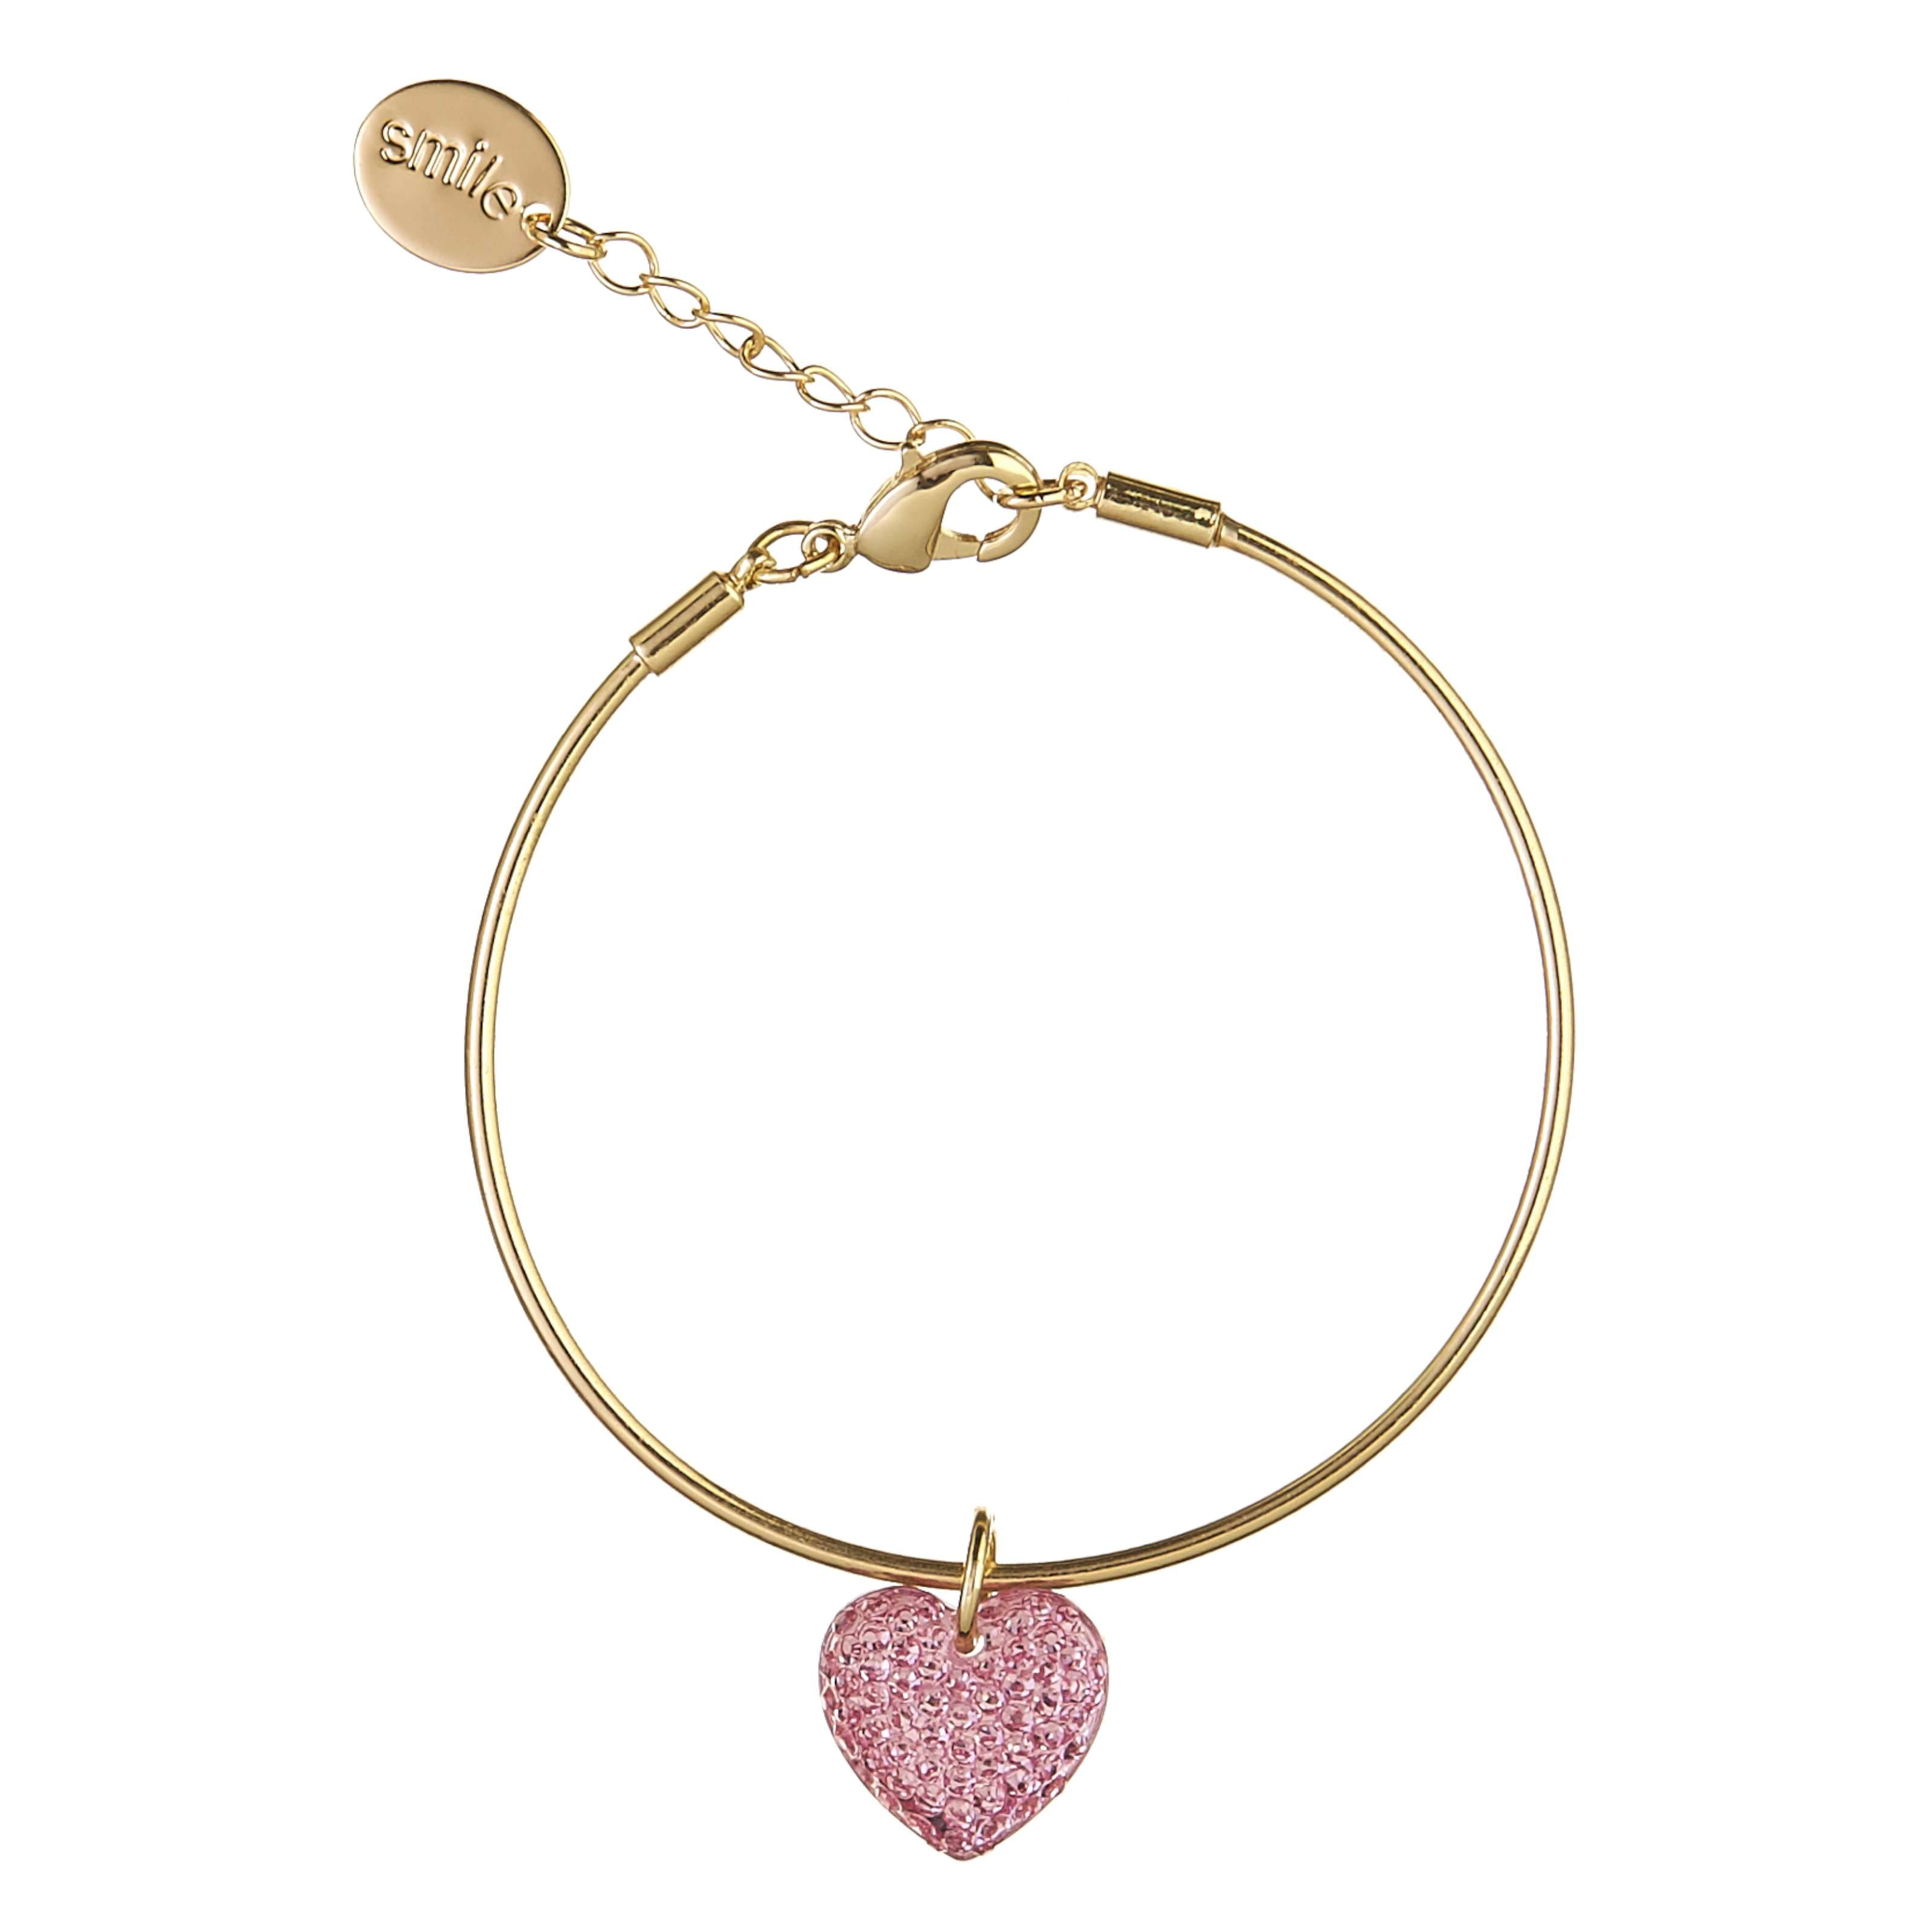 ... Image for Smile Heart Bangle Bracelet from Smiggle ff72ba674